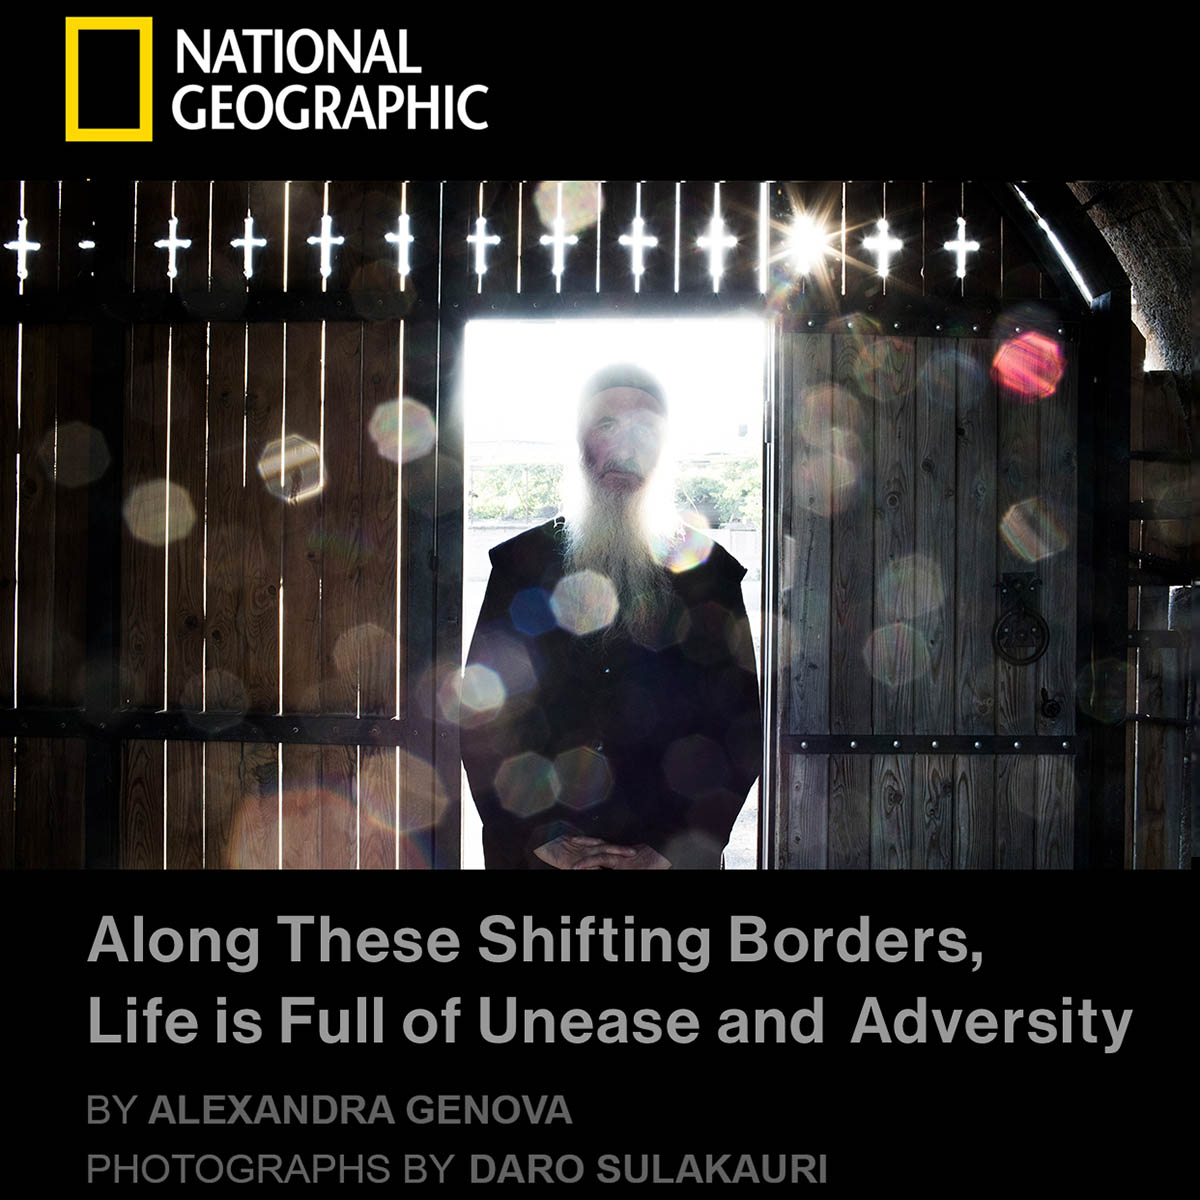 https://www.nationalgeographic.com/photography/proof/2018/05/russia-georgia-abkhazia-south-ossetia-moving-border-territory-culture